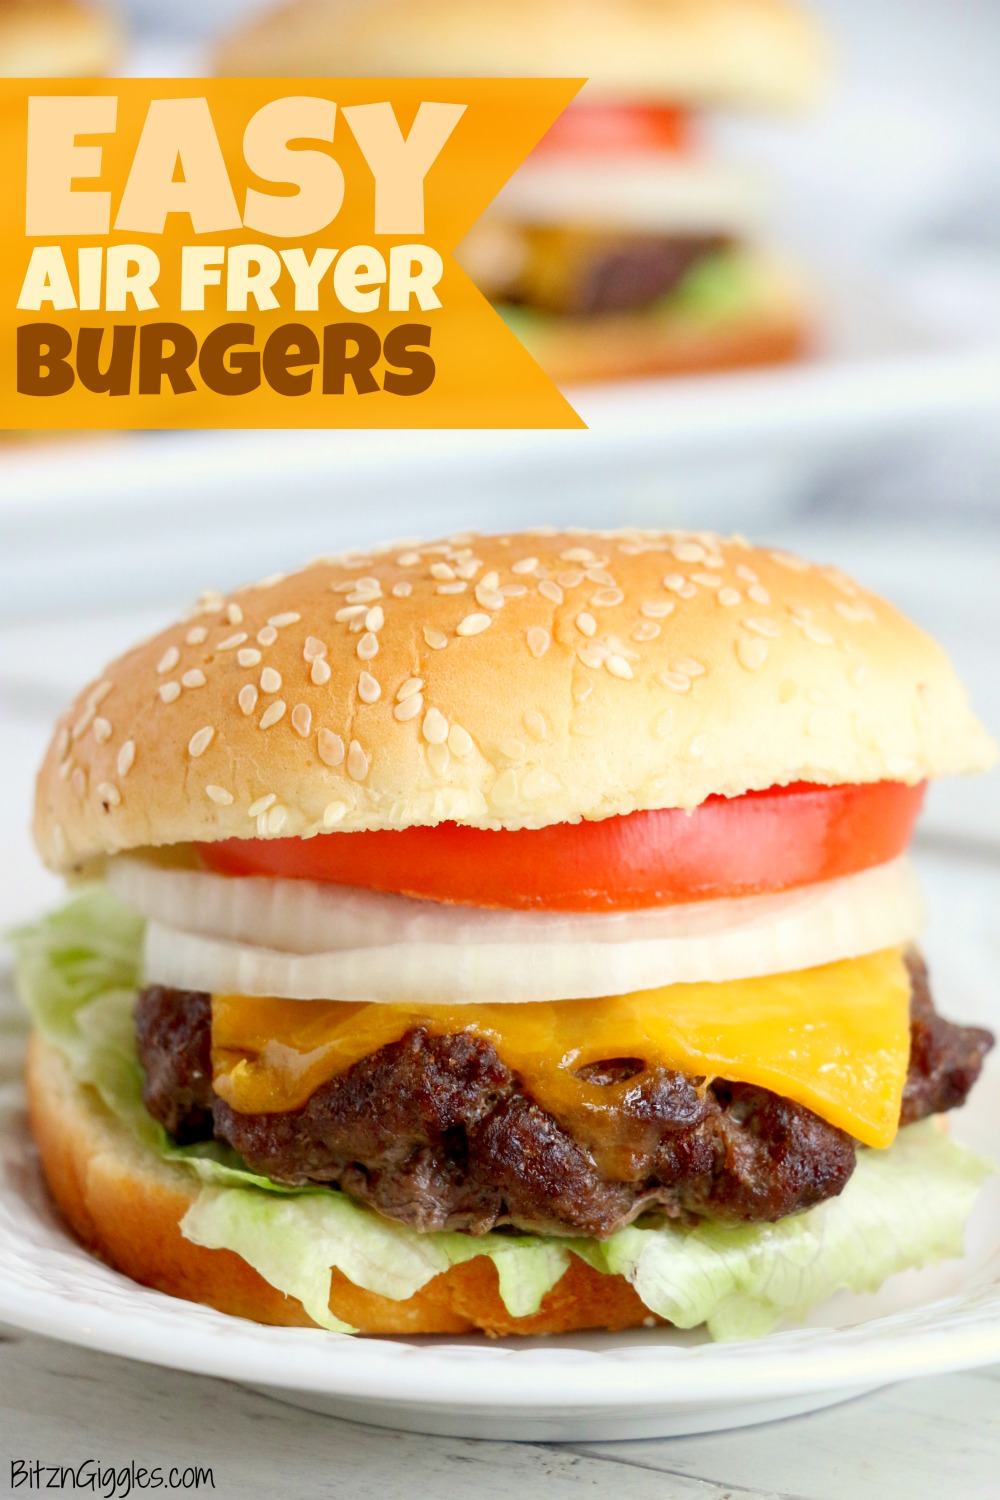 Easy Air Fryer Burgers - Juicy and flavorful burgers cooked perfectly in the air fryer!